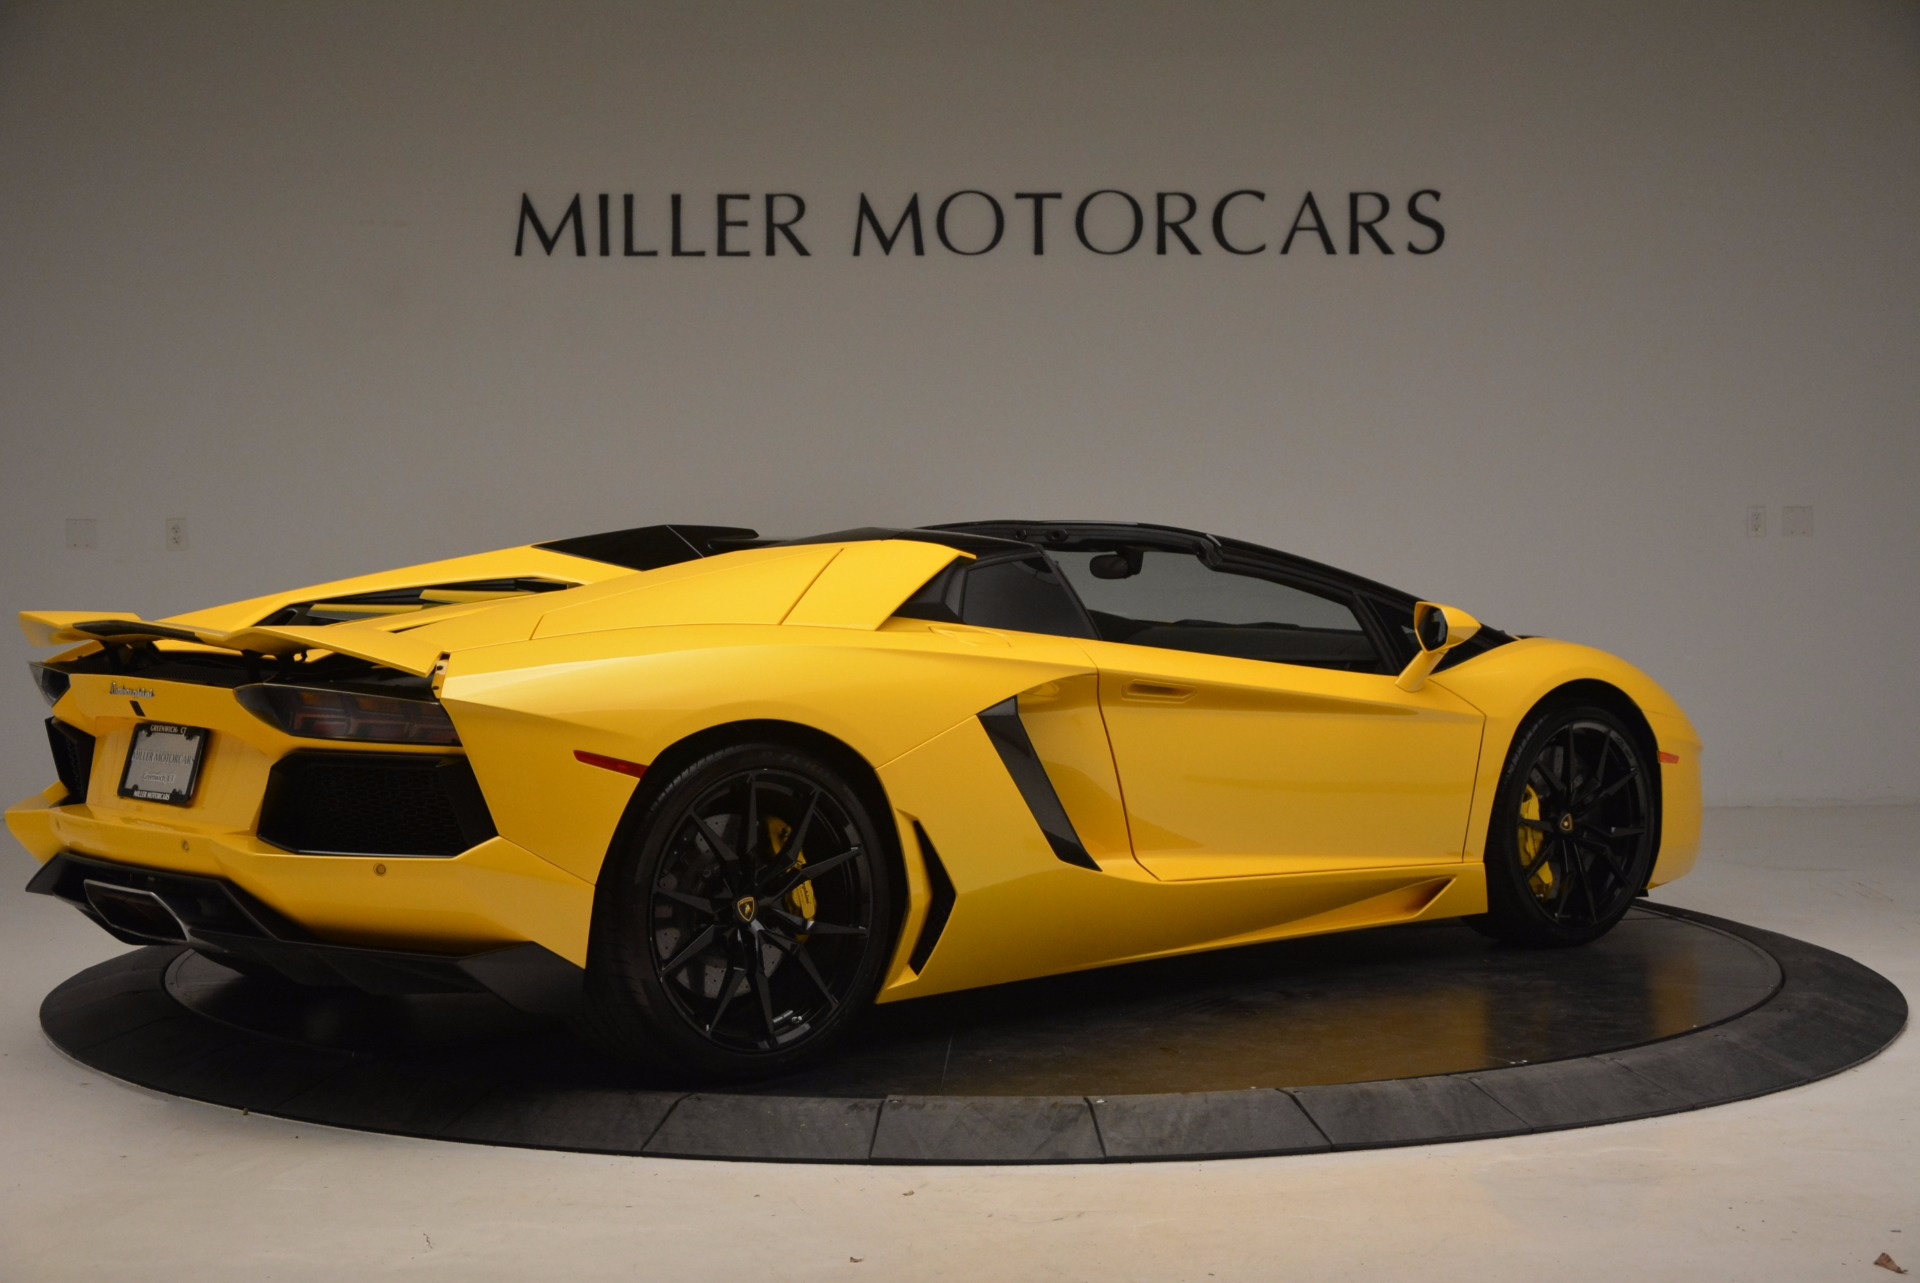 Used 2015 Lamborghini Aventador LP 700-4 Roadster For Sale In Westport, CT 1774_p9